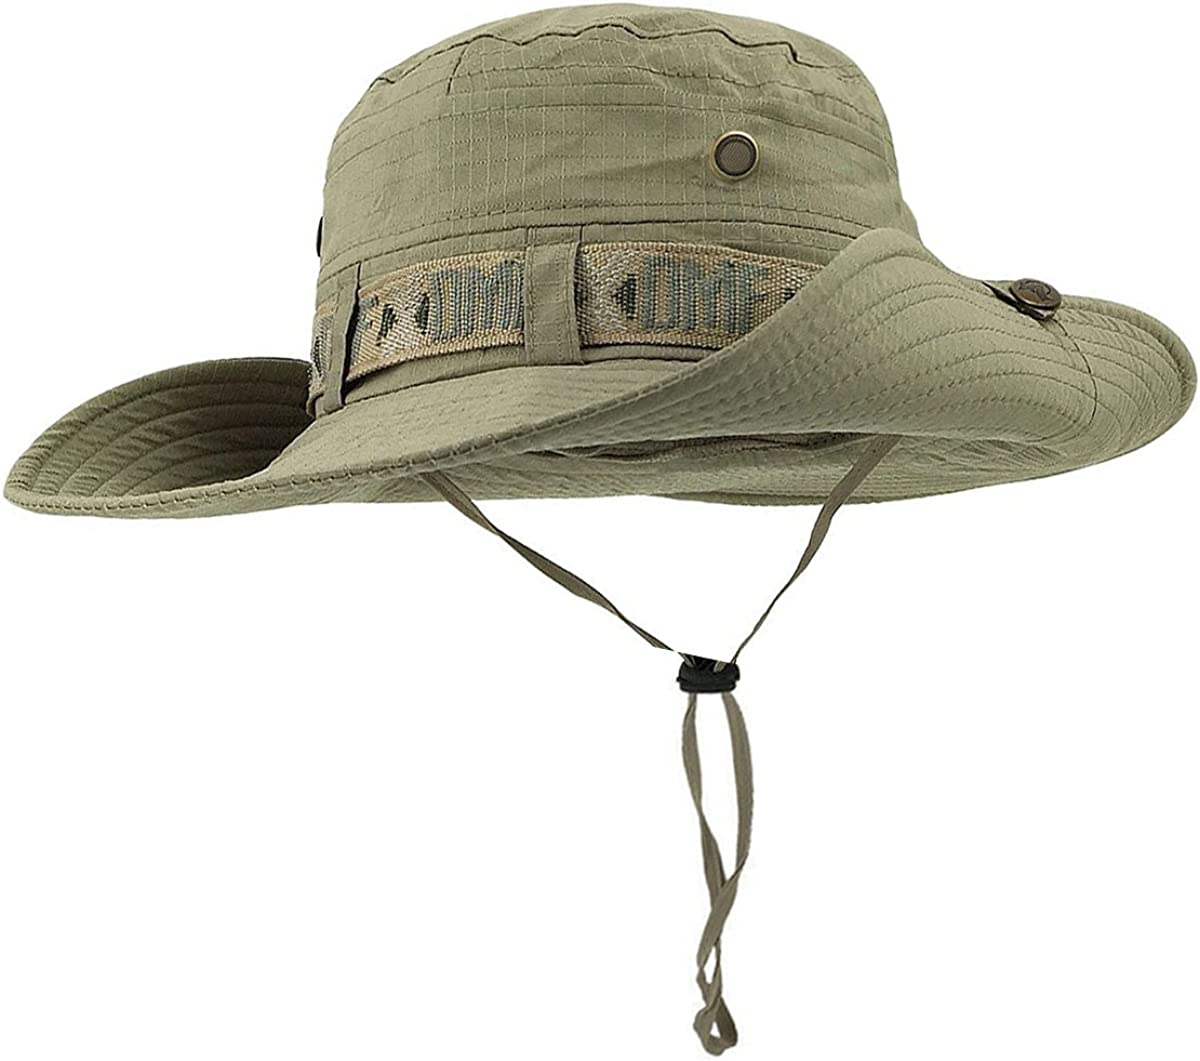 TREESTAR Unisex Bucket Hats Spring Summer Wide Brim Cotton Camo Cap for Outdoor Climbing Fishing Jungle Campinghat